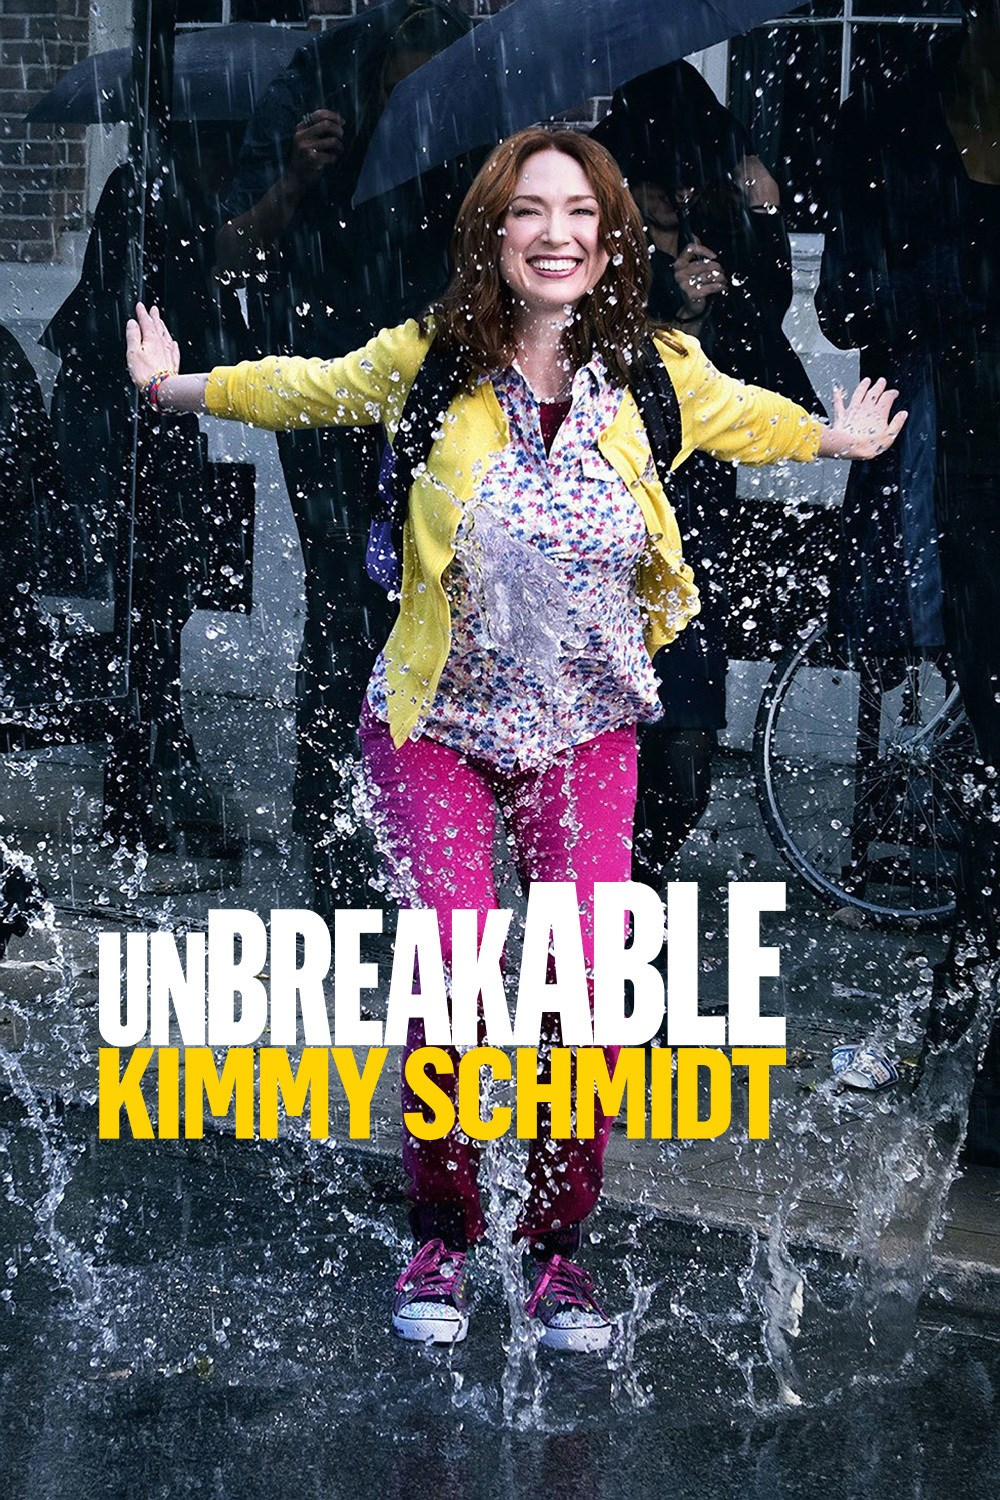 Unbreakable Kimmy Schmidt DVD cover